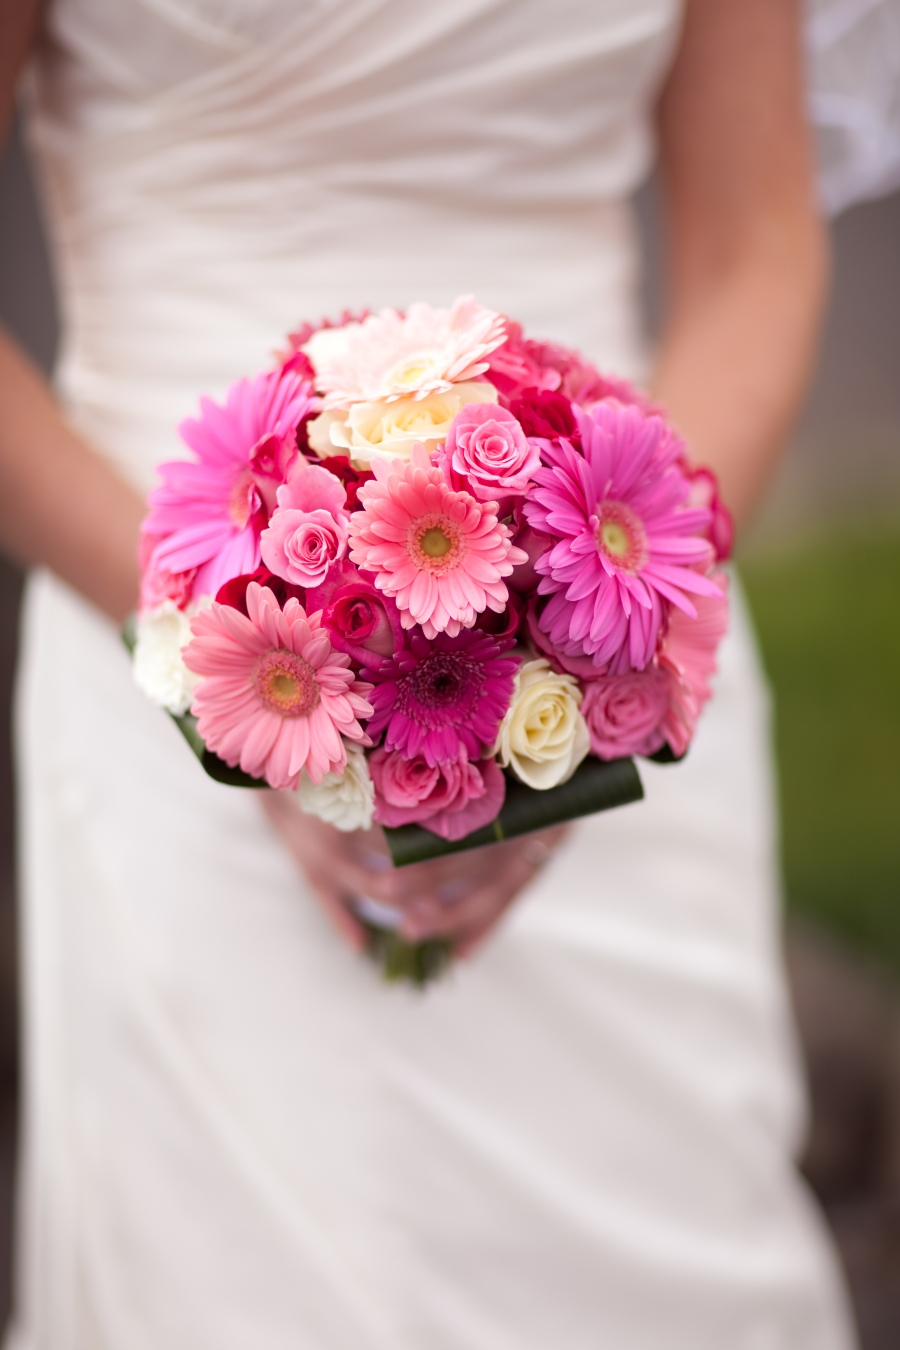 Beach Wedding Bouquet Pink Gerbeera Daisies And Roses